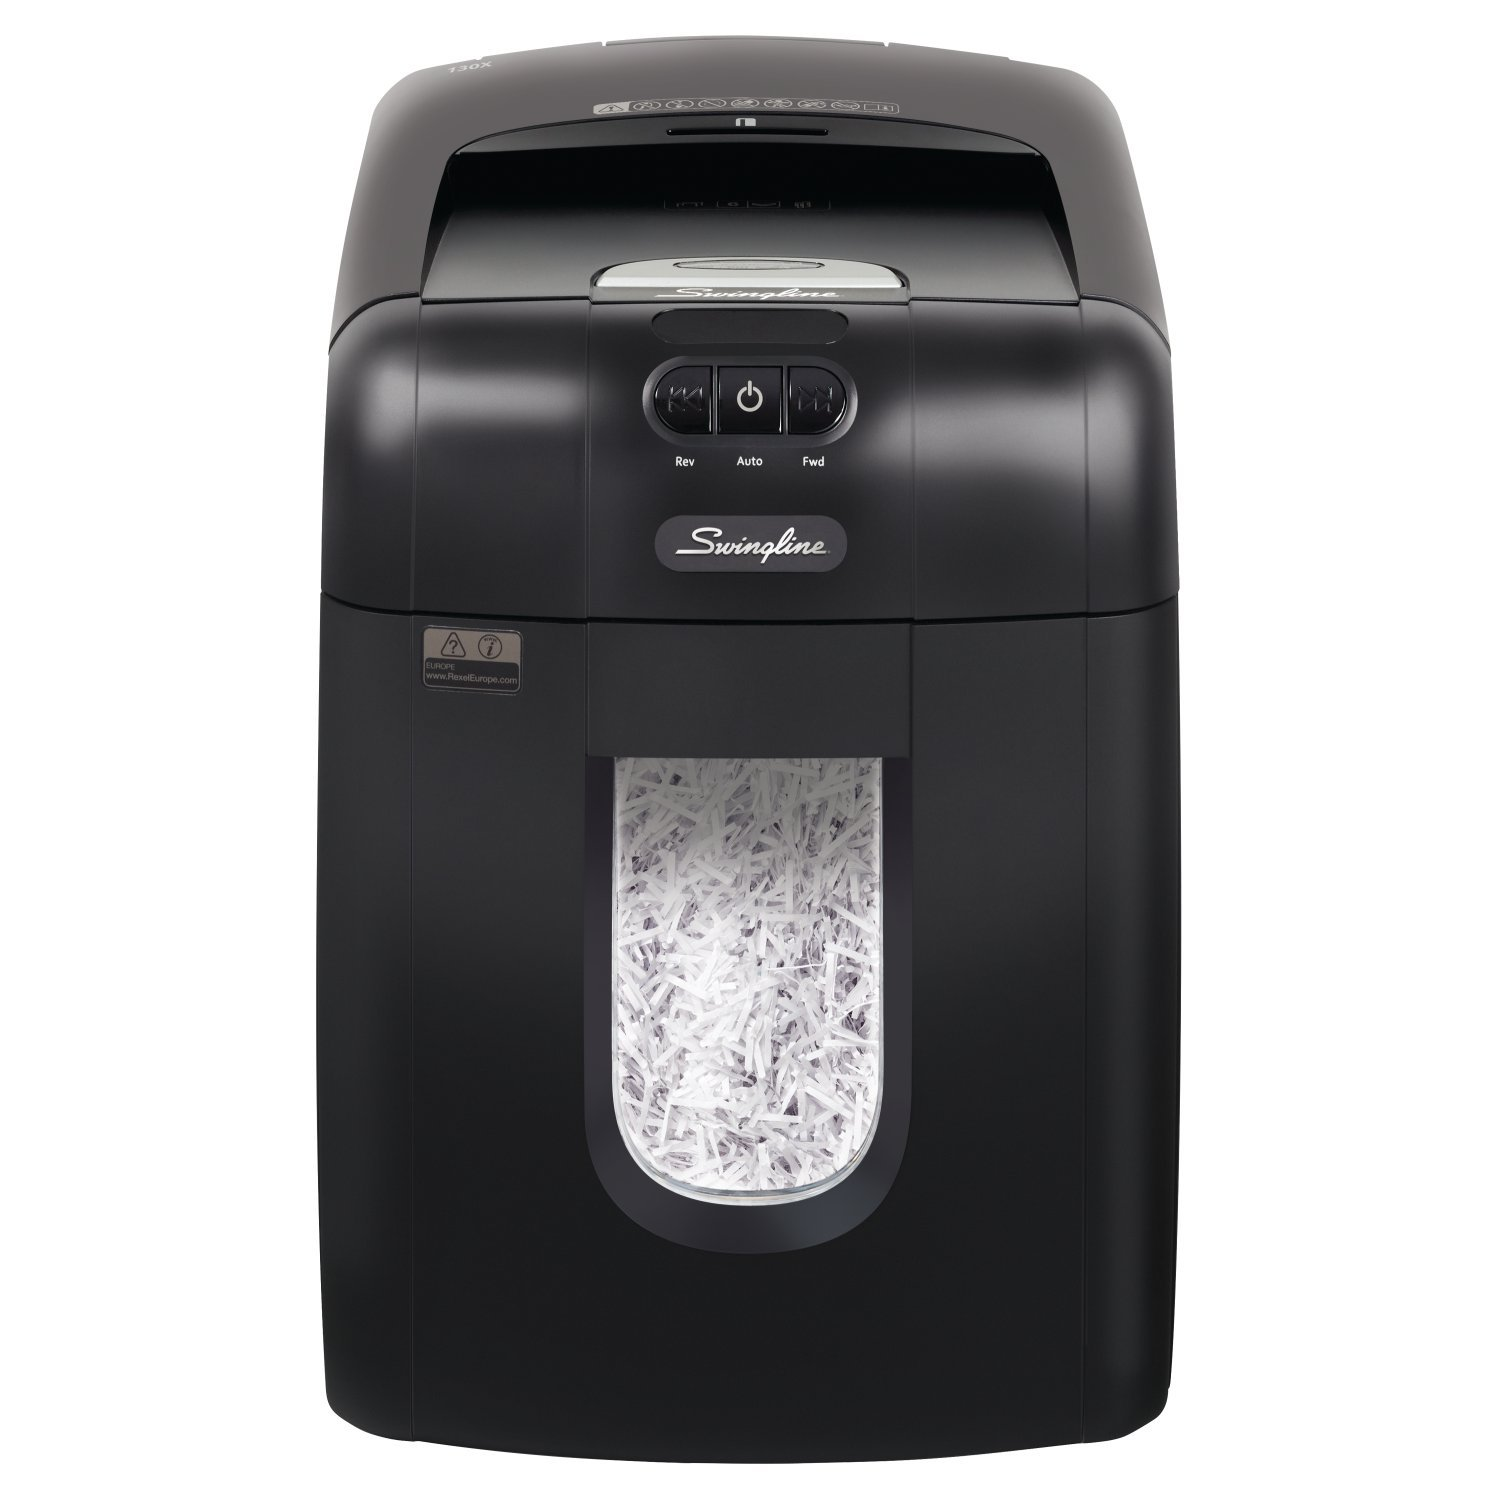 Swingline Paper Shredder, Auto Feed, 130 Sheet Capacity, Super Cross-Cut, 1-2 Users, Stack-and-Shred 130X (1757571)